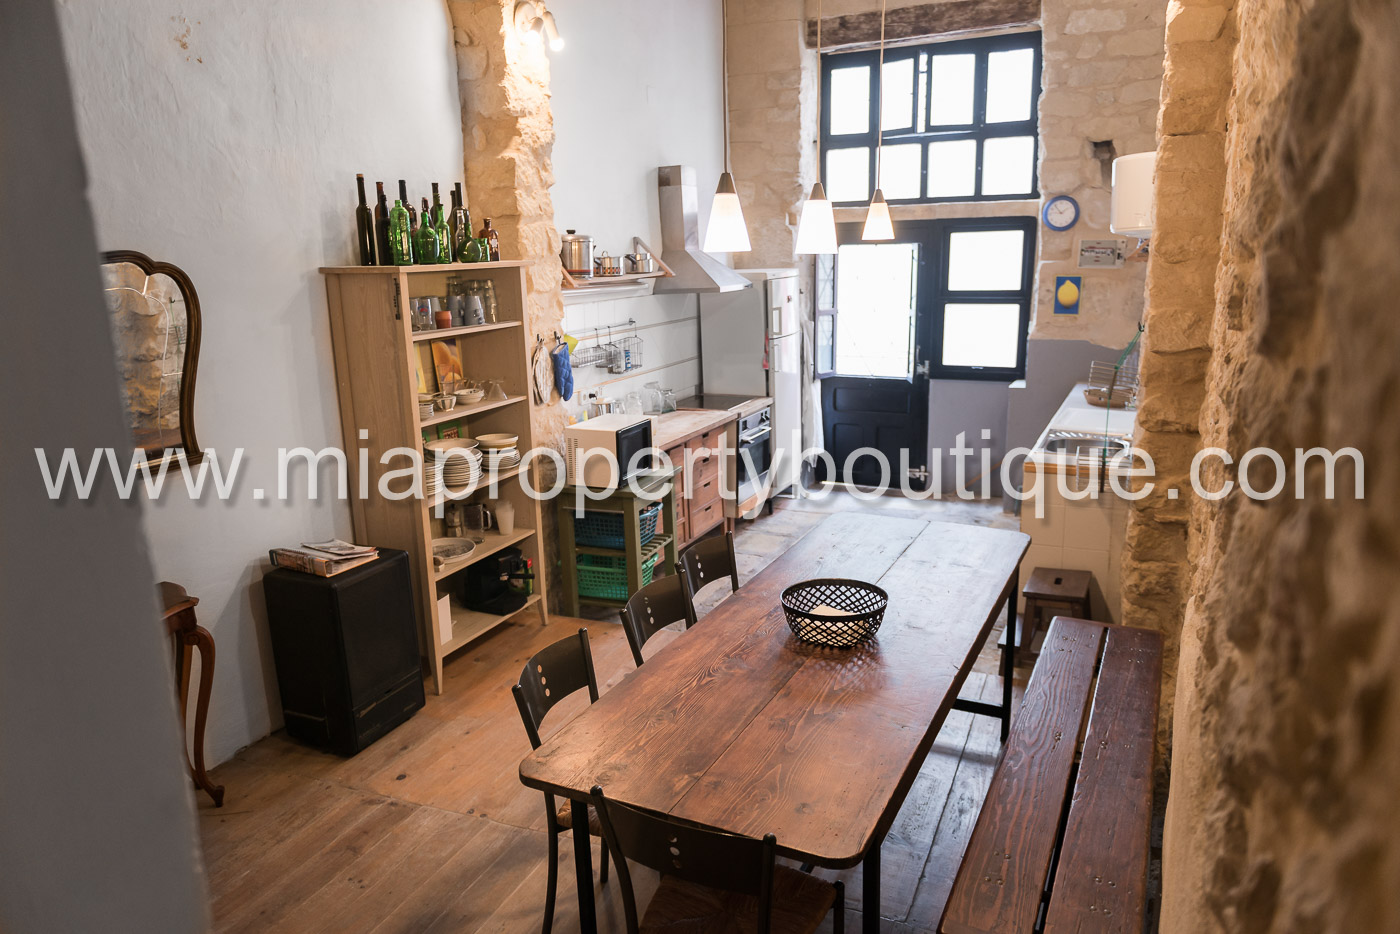 Characterful Townhouse in Historic Old Town Alicante